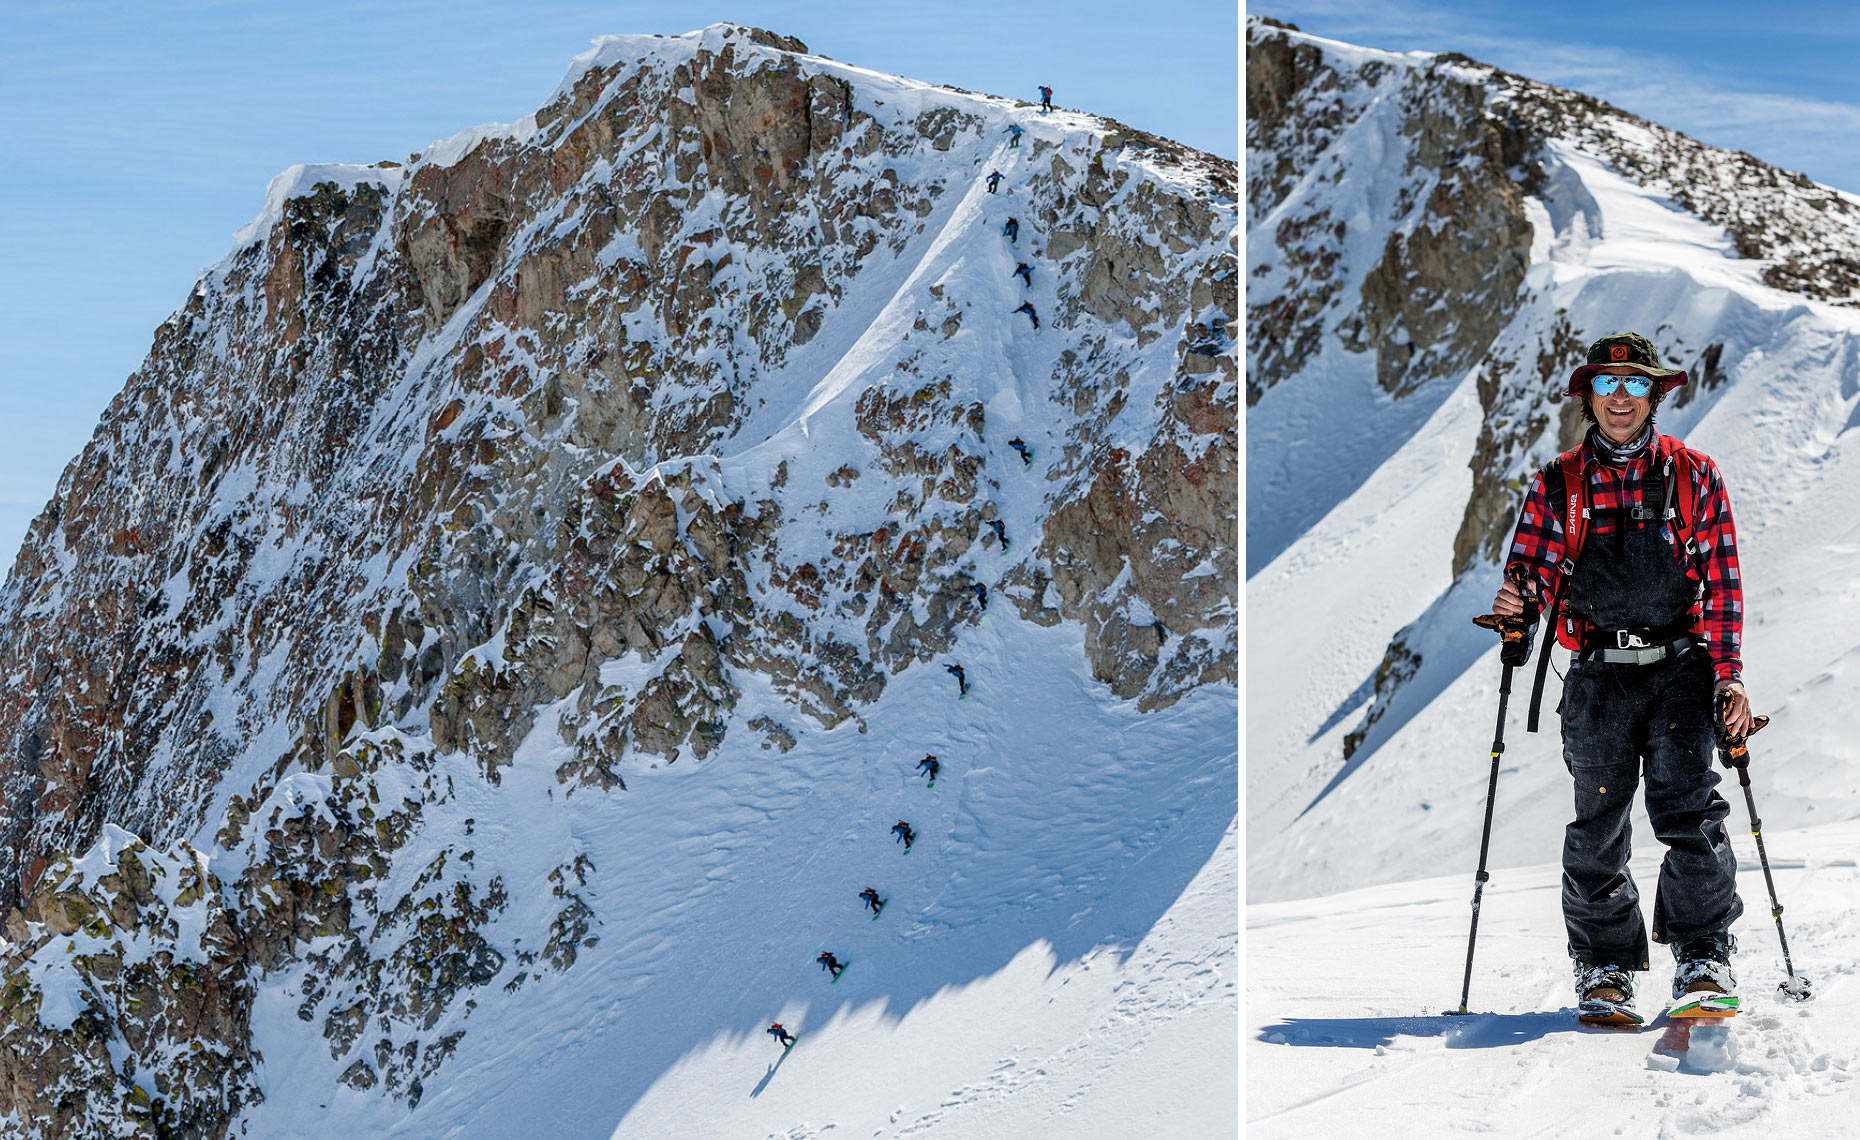 Phantom-Lifts-June-To-Mammoth-TWSNOW-Chris-Wellhausen-08